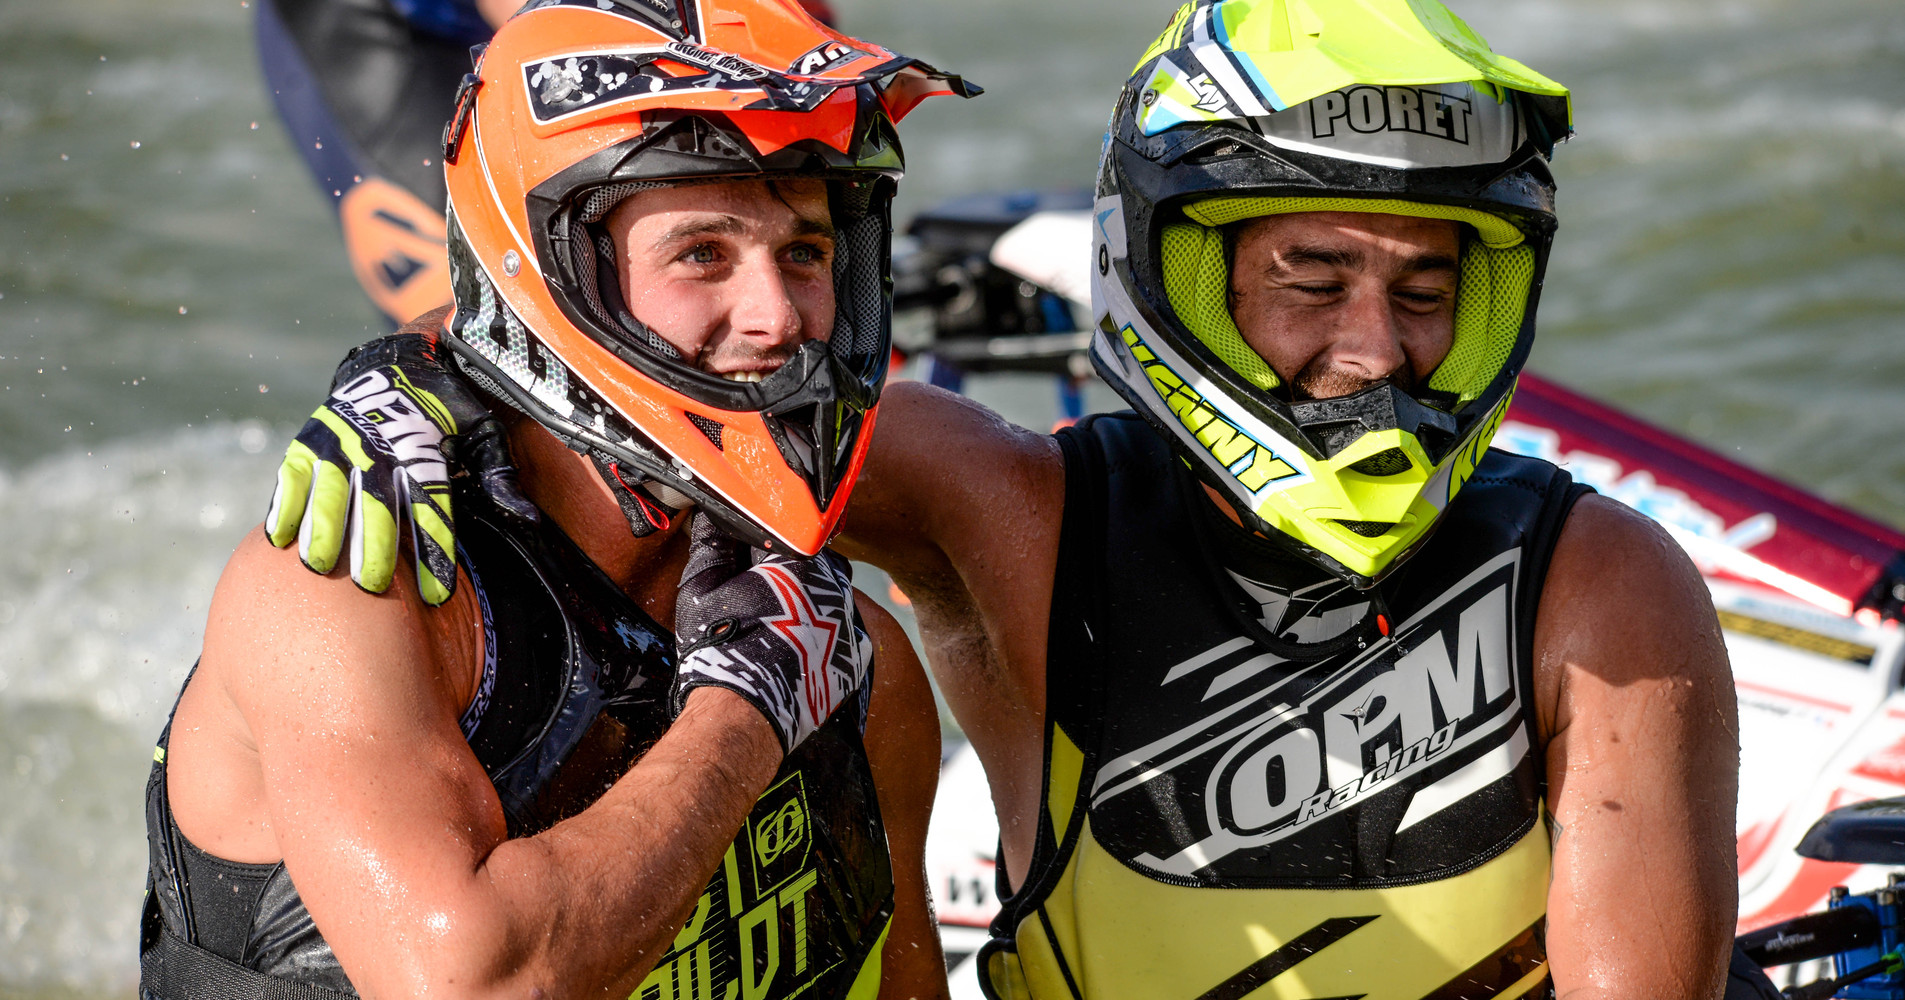 Steven Loiodice (left) and Mickael Poret (right) both will be ride the new Bullett V3 hull in 2018